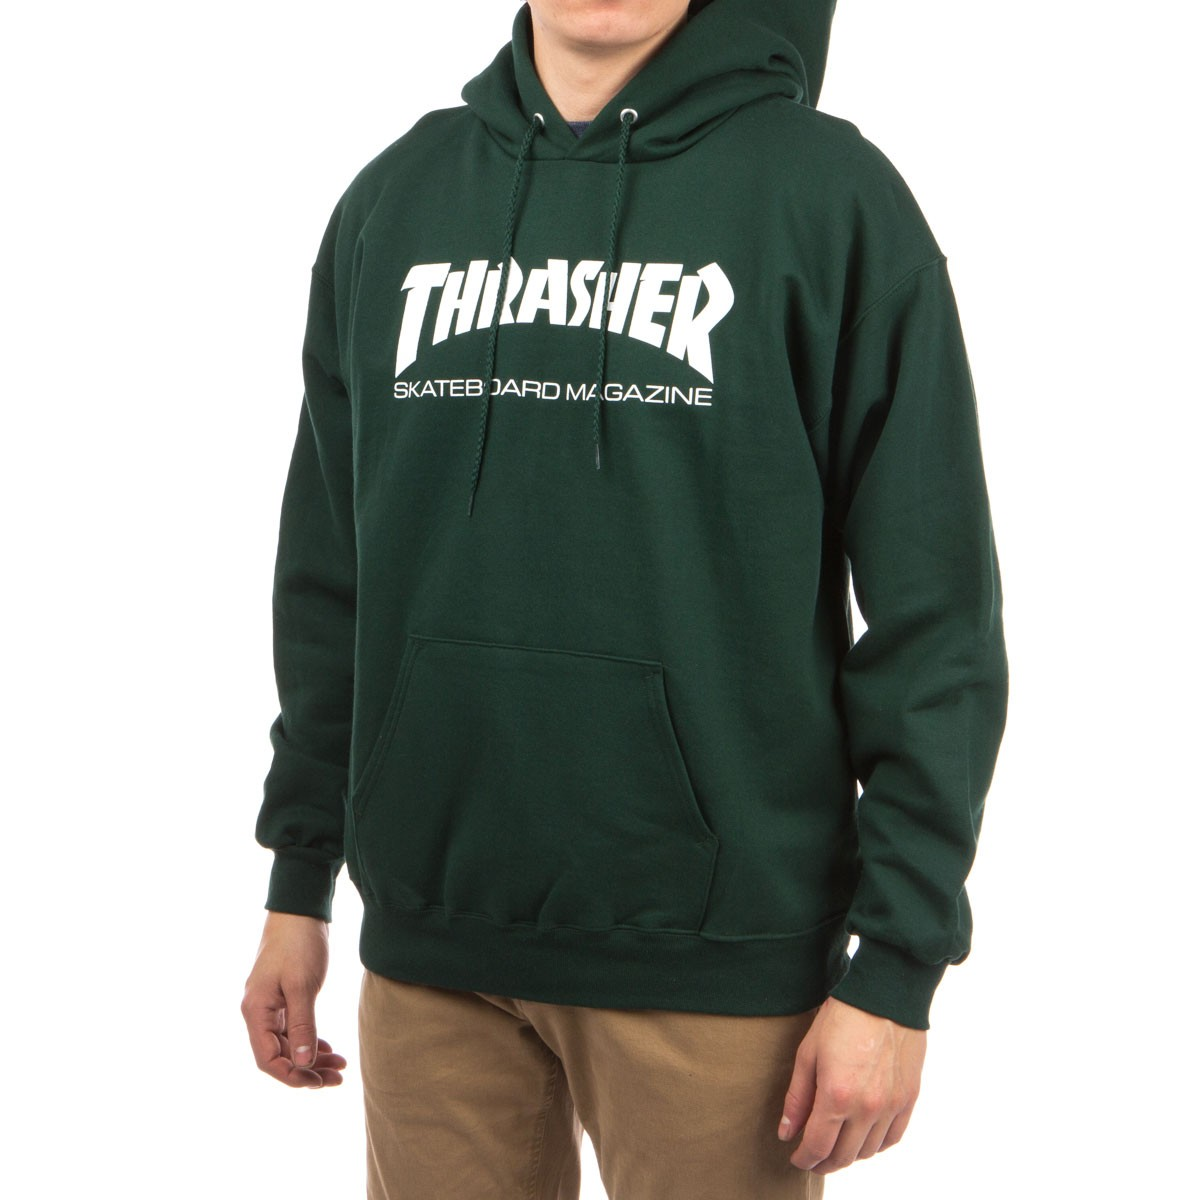 Home gt apparel gt sweatshirts and hoodies gt thrasher gt thrasher skate